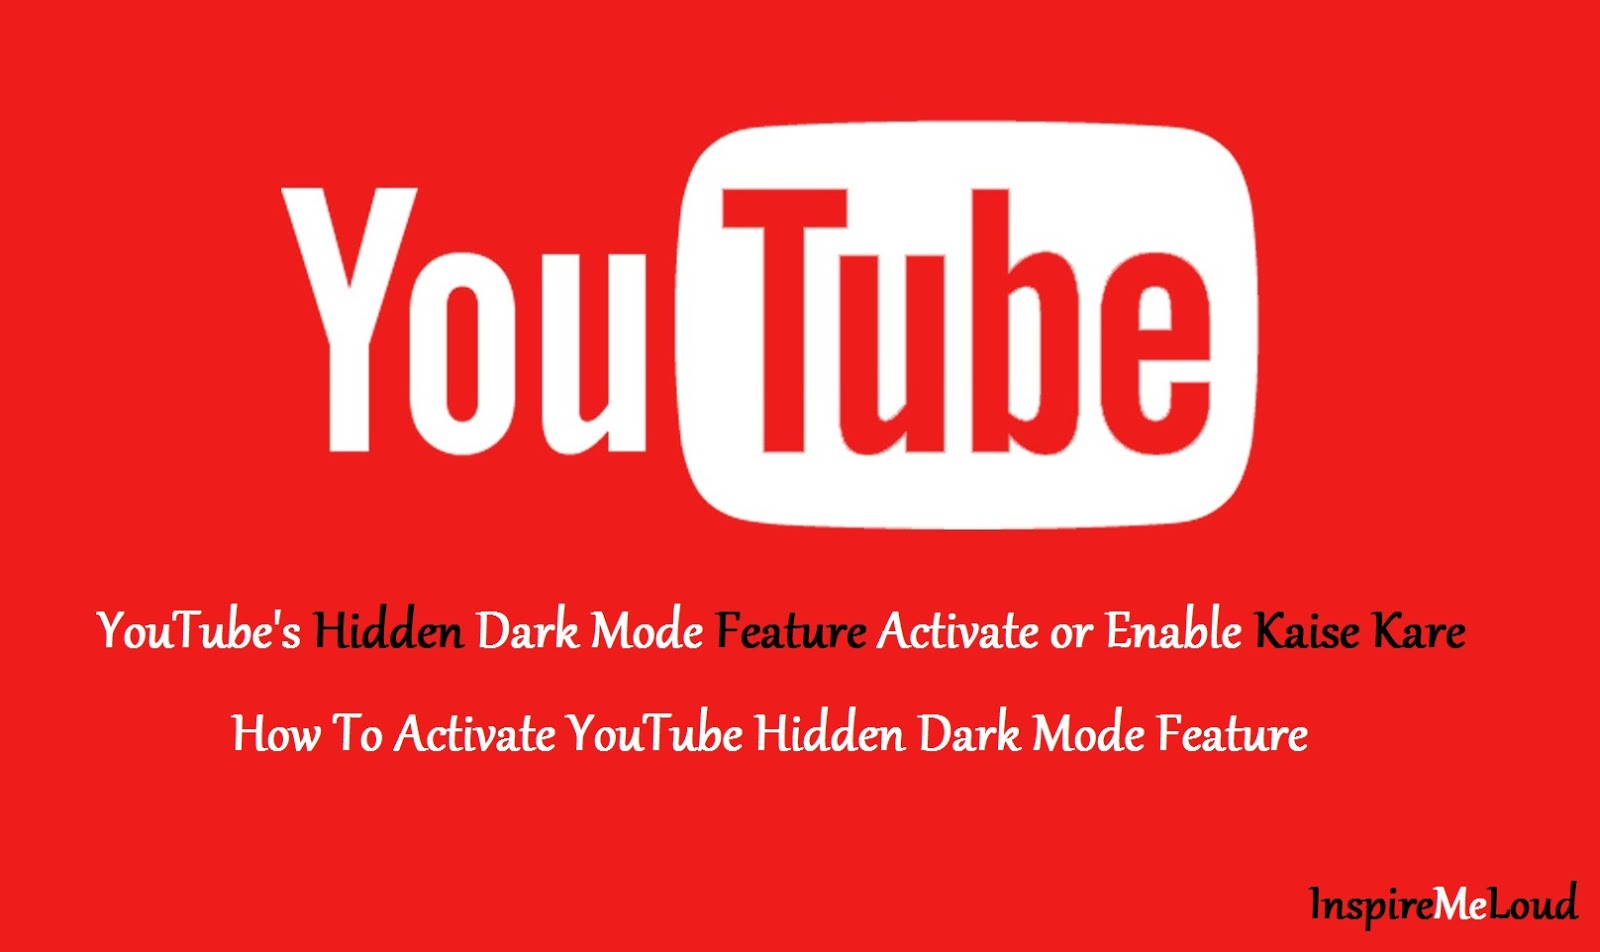 YouTube's Hidden Dark Mode Feature Activate or Enable Kaise Kare